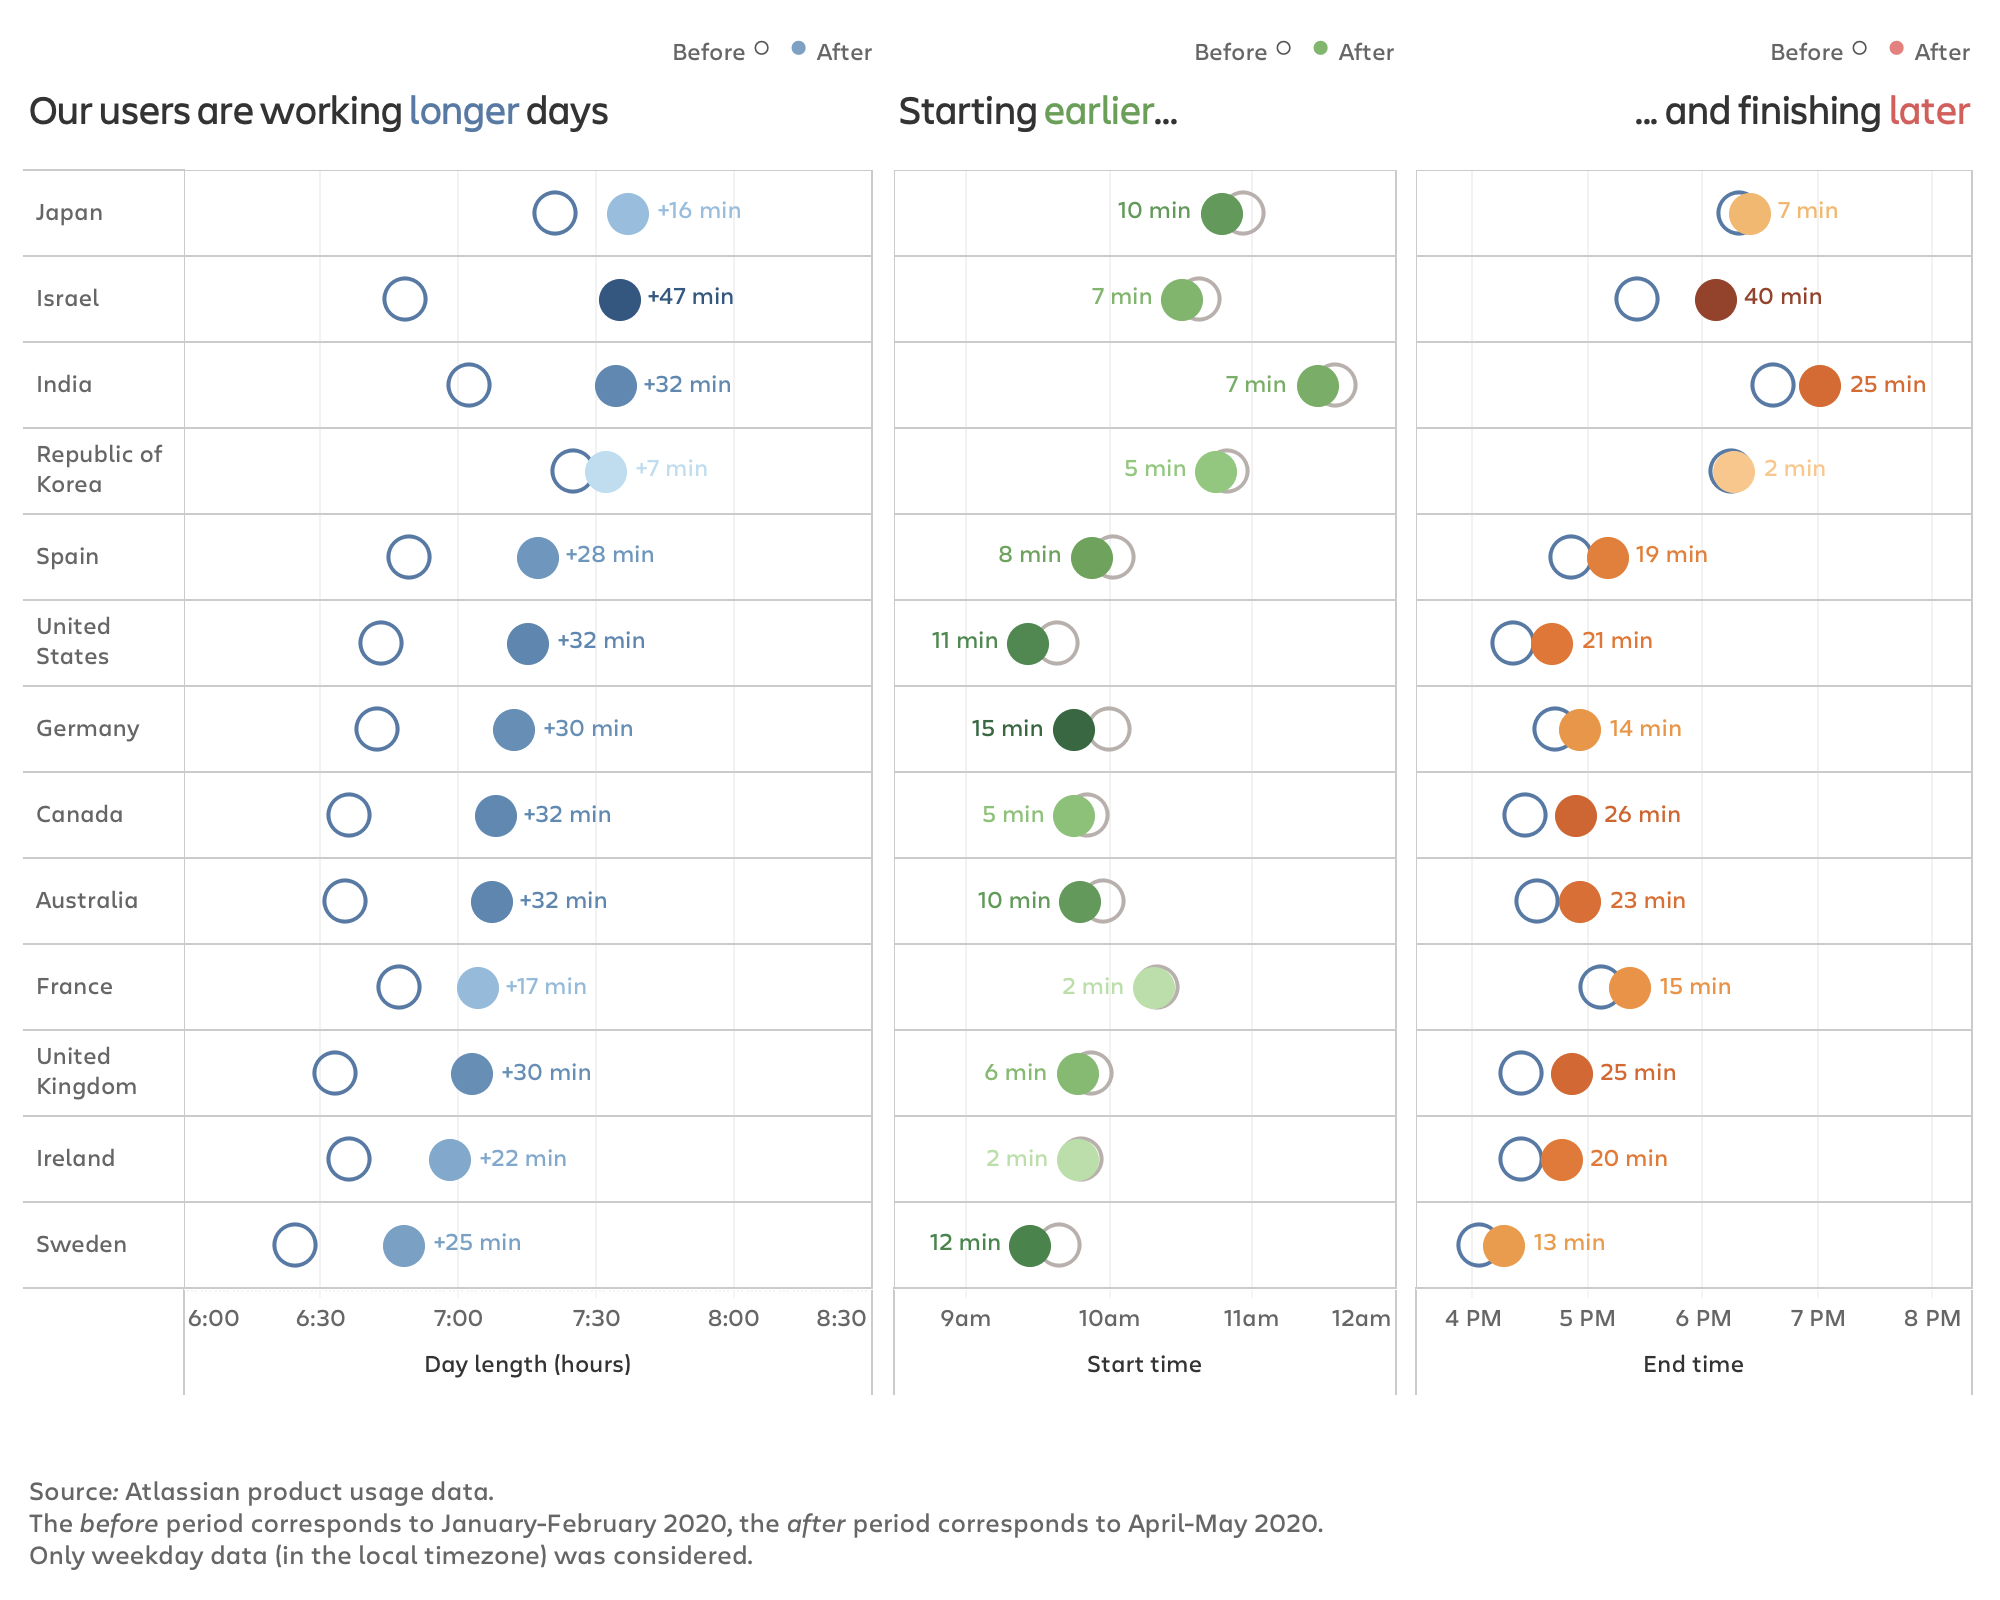 A breakdown in changes in the length of the workday by country